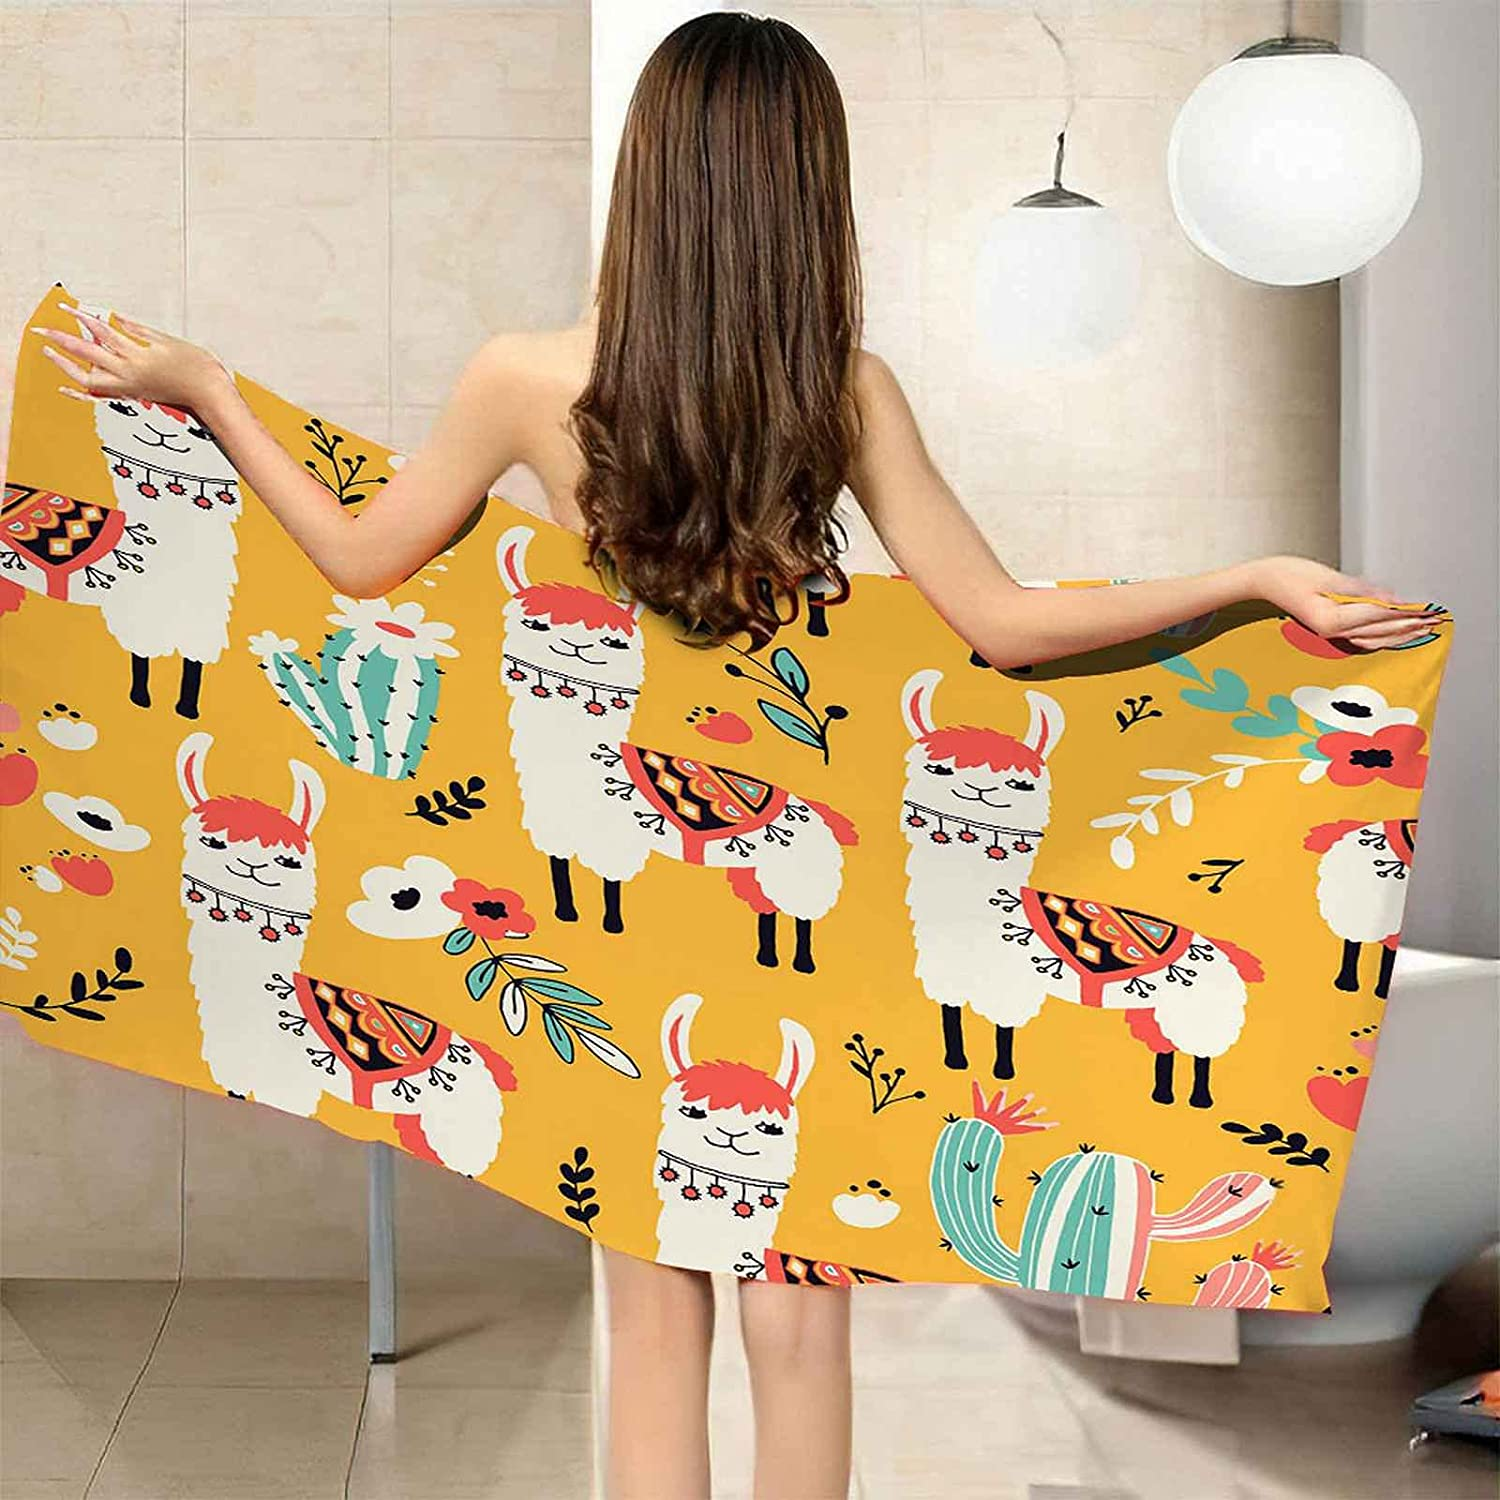 TFXDBZ Beach Towels Free shipping anywhere in the nation for Adults Sand Towel quality assurance Microfiber